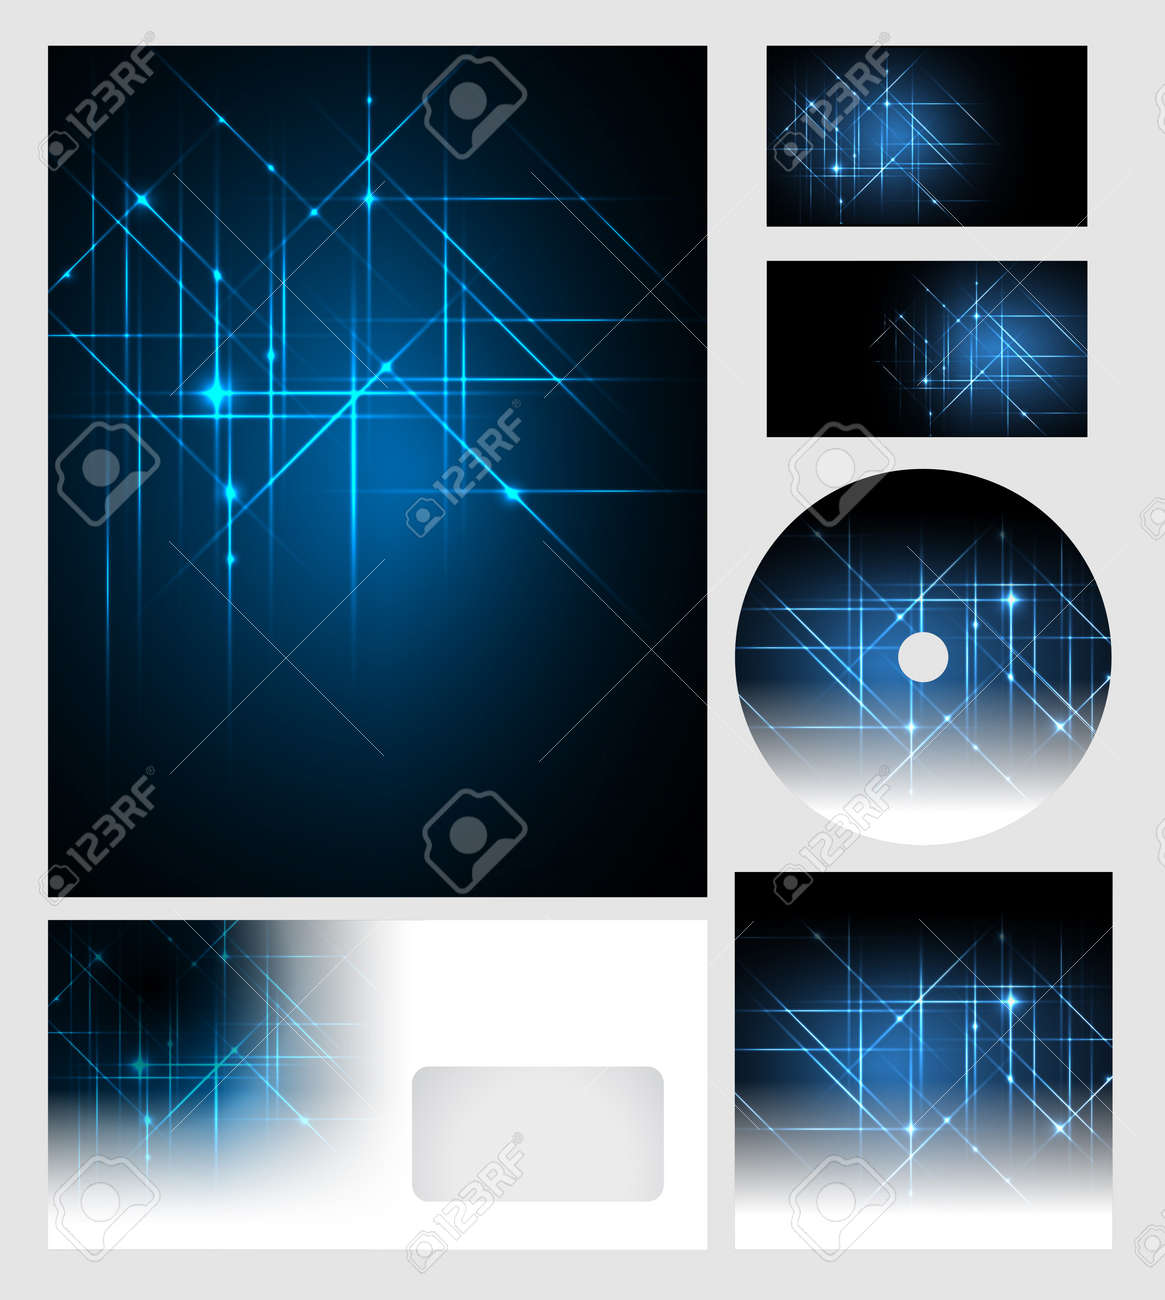 Corporate Identity Templates - Vector - Editable Business Cards ...